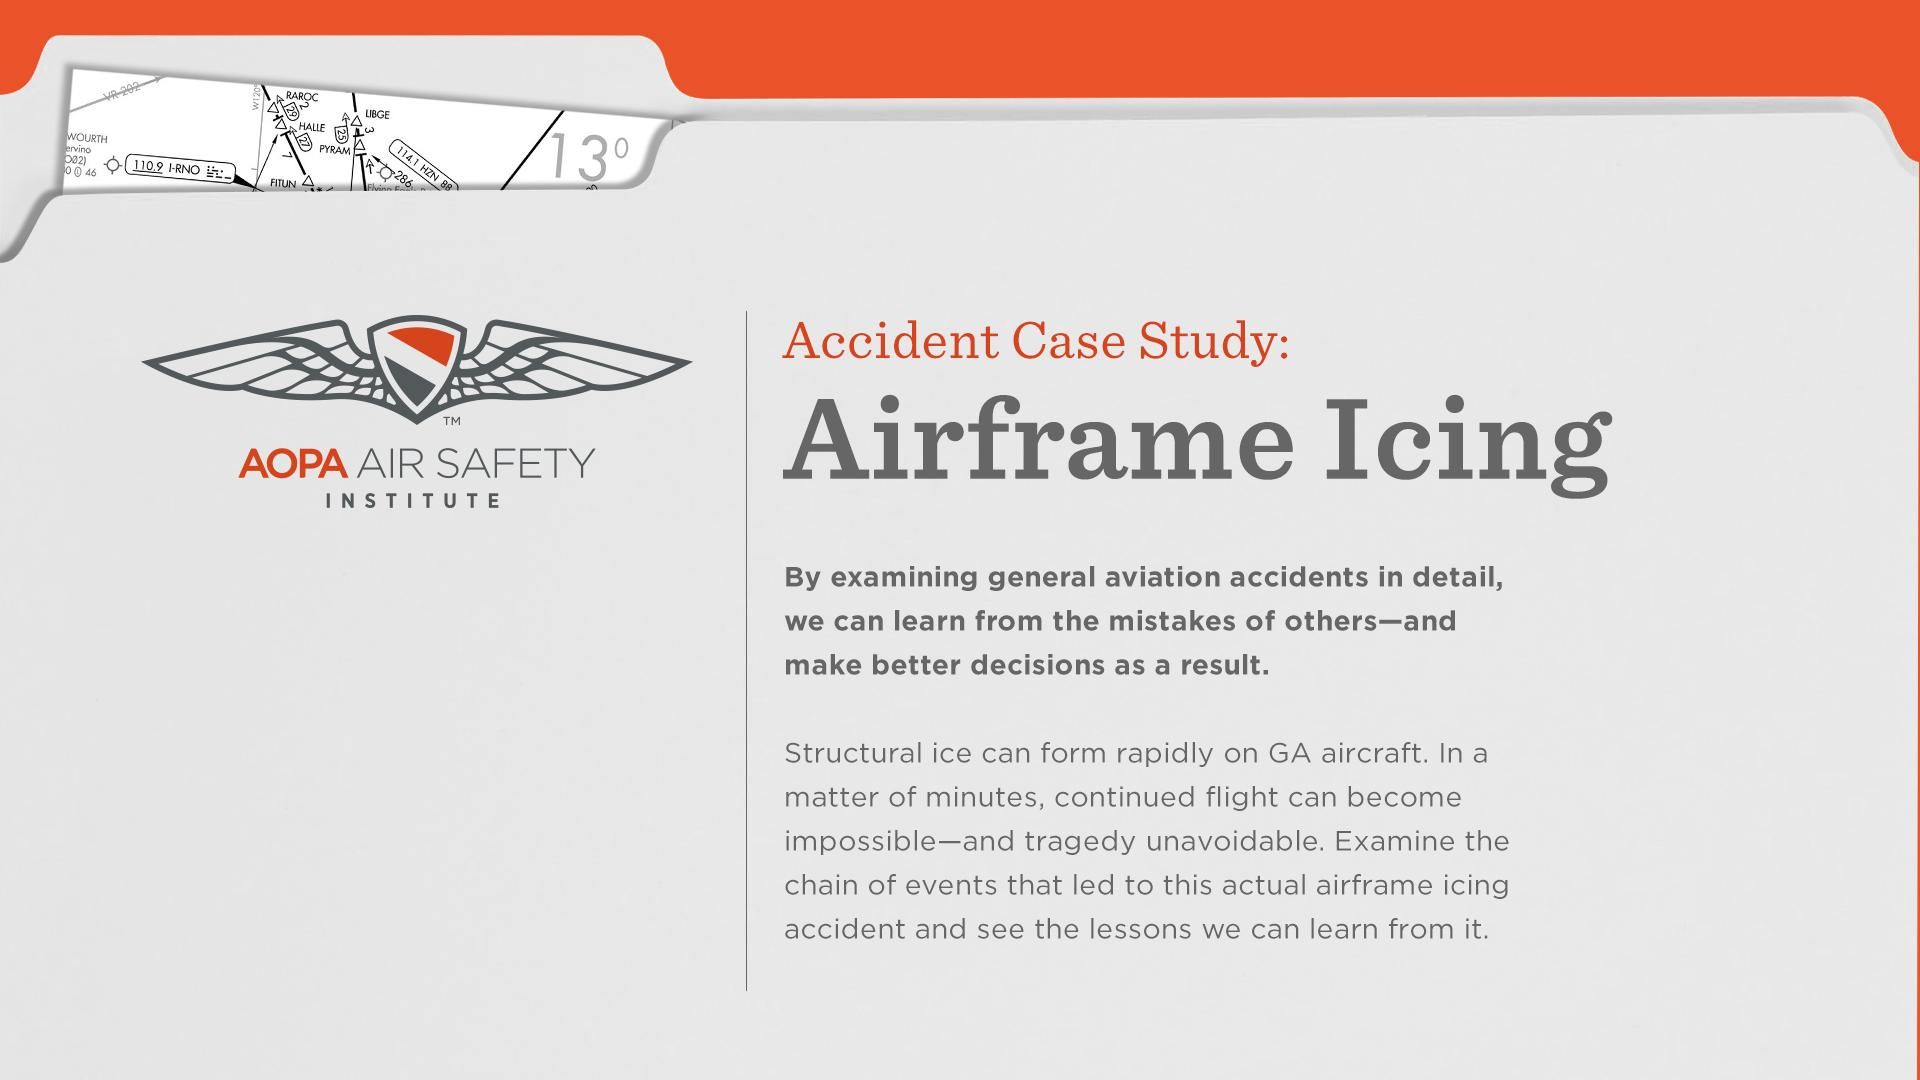 Accident Case Study: Airframe Icing